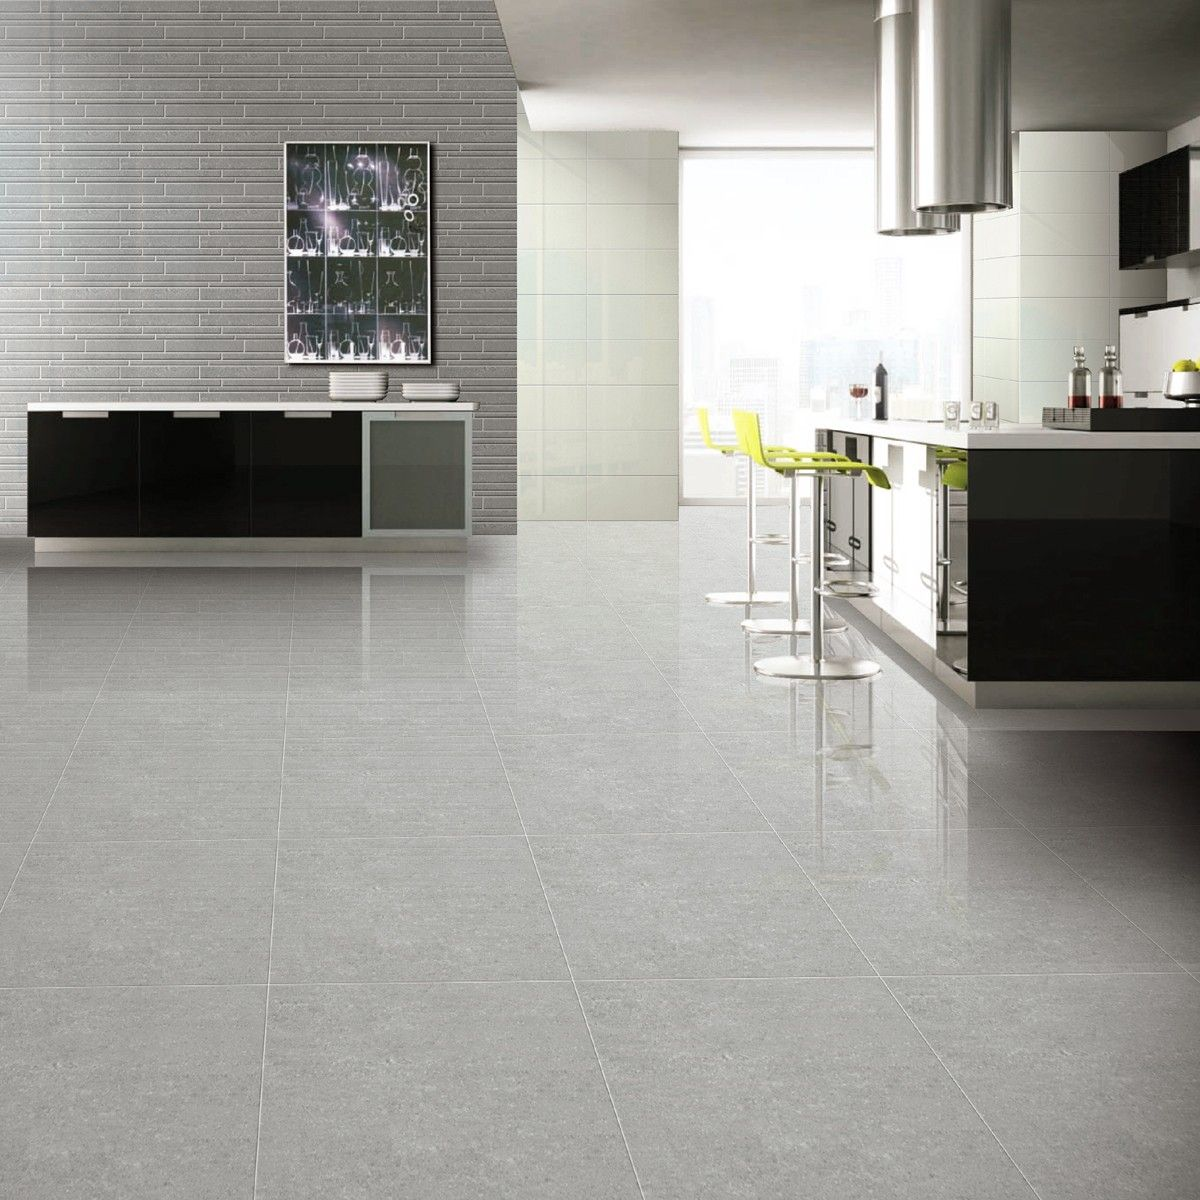 60x60 super polished grey porcelain floor tiles tile for Carrelage 80x80 gris